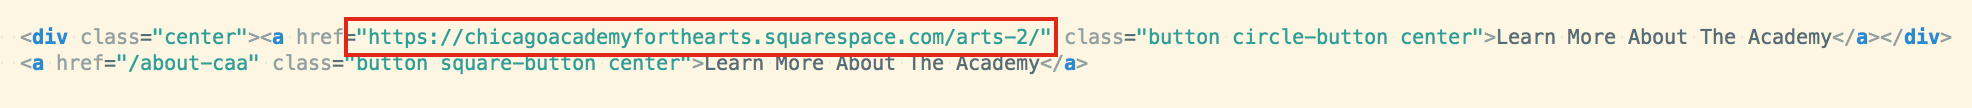 Then paste the full link within the HREF. When the site goes live, we'll need to change the links from:  https://chicagoacademyforthearts.org  to  http://www.chicagoacademyforthearts.org